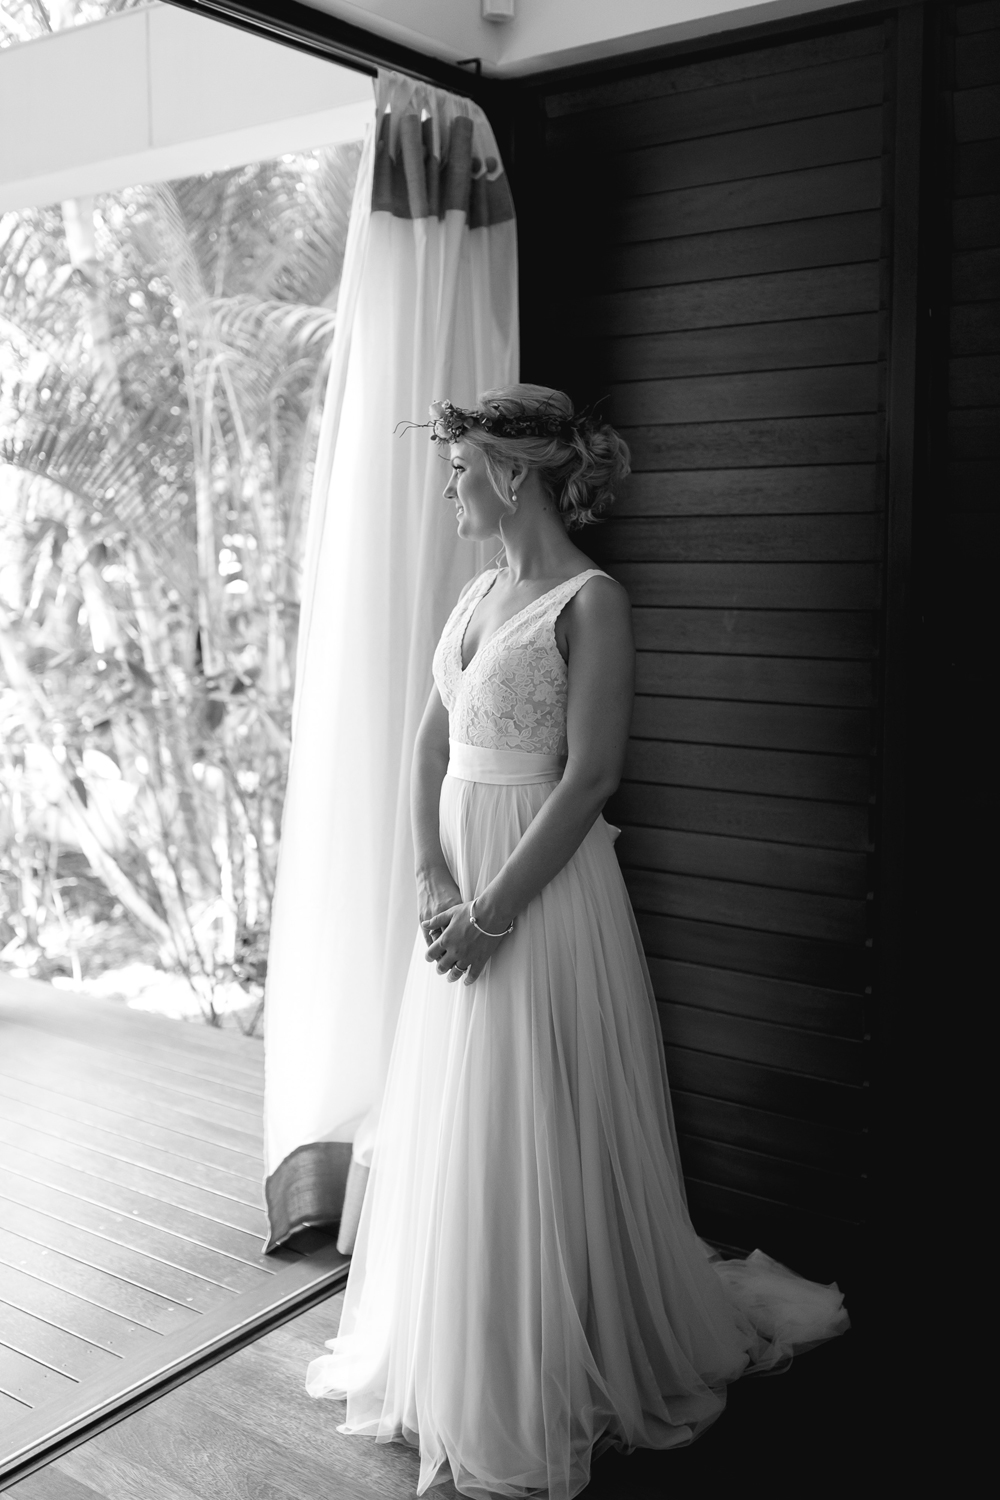 244-Byron-Bay-Wedding-Photographer-Carly-Tia-Photography.jpg